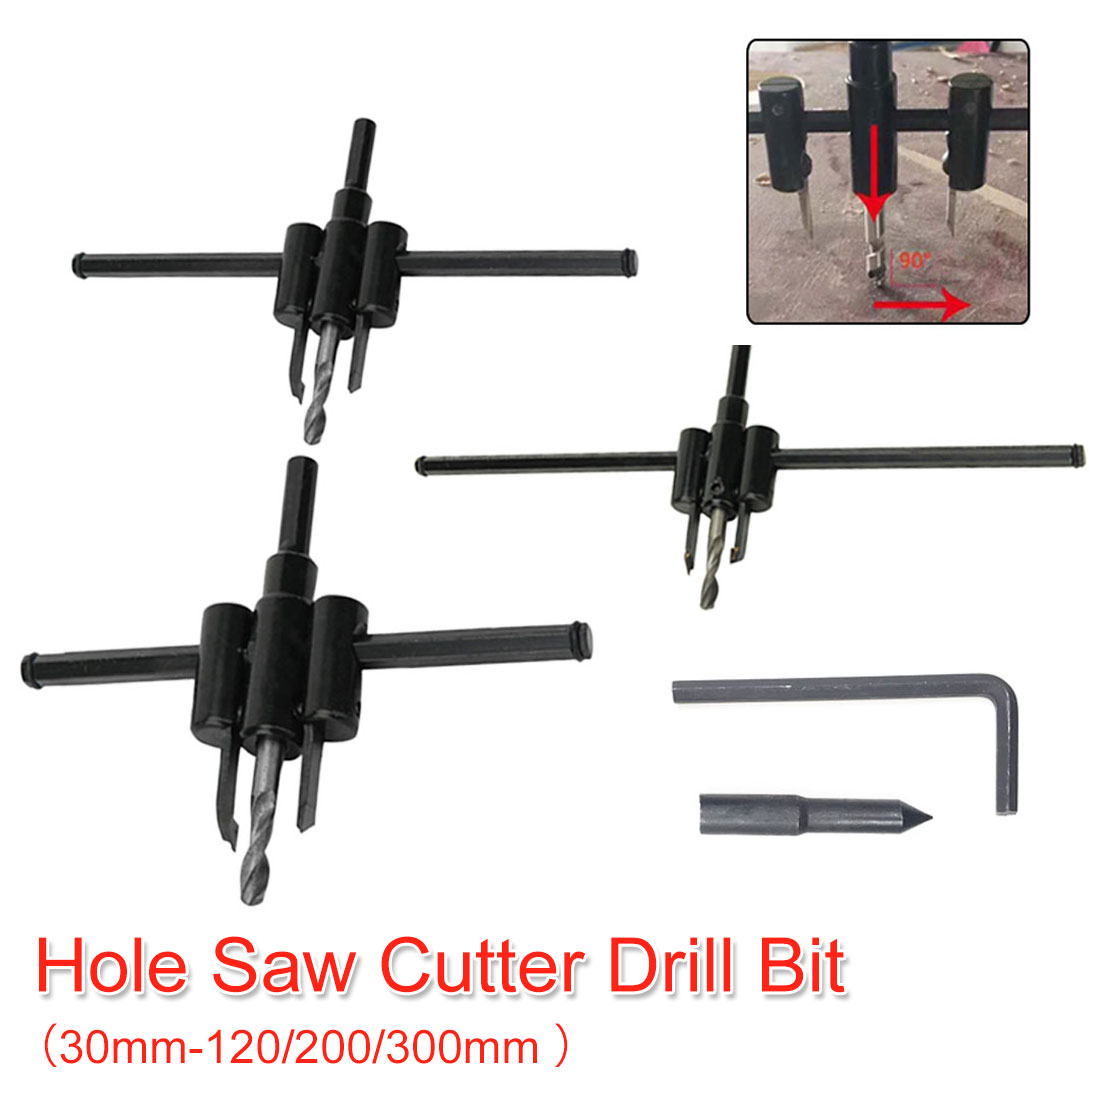 Alloy Adjustable Circle Hole Cutter With Wood Hole Saw Metal Drill Bit Cutter Drill Tools For Woodworking 30mm-120/200/300mm